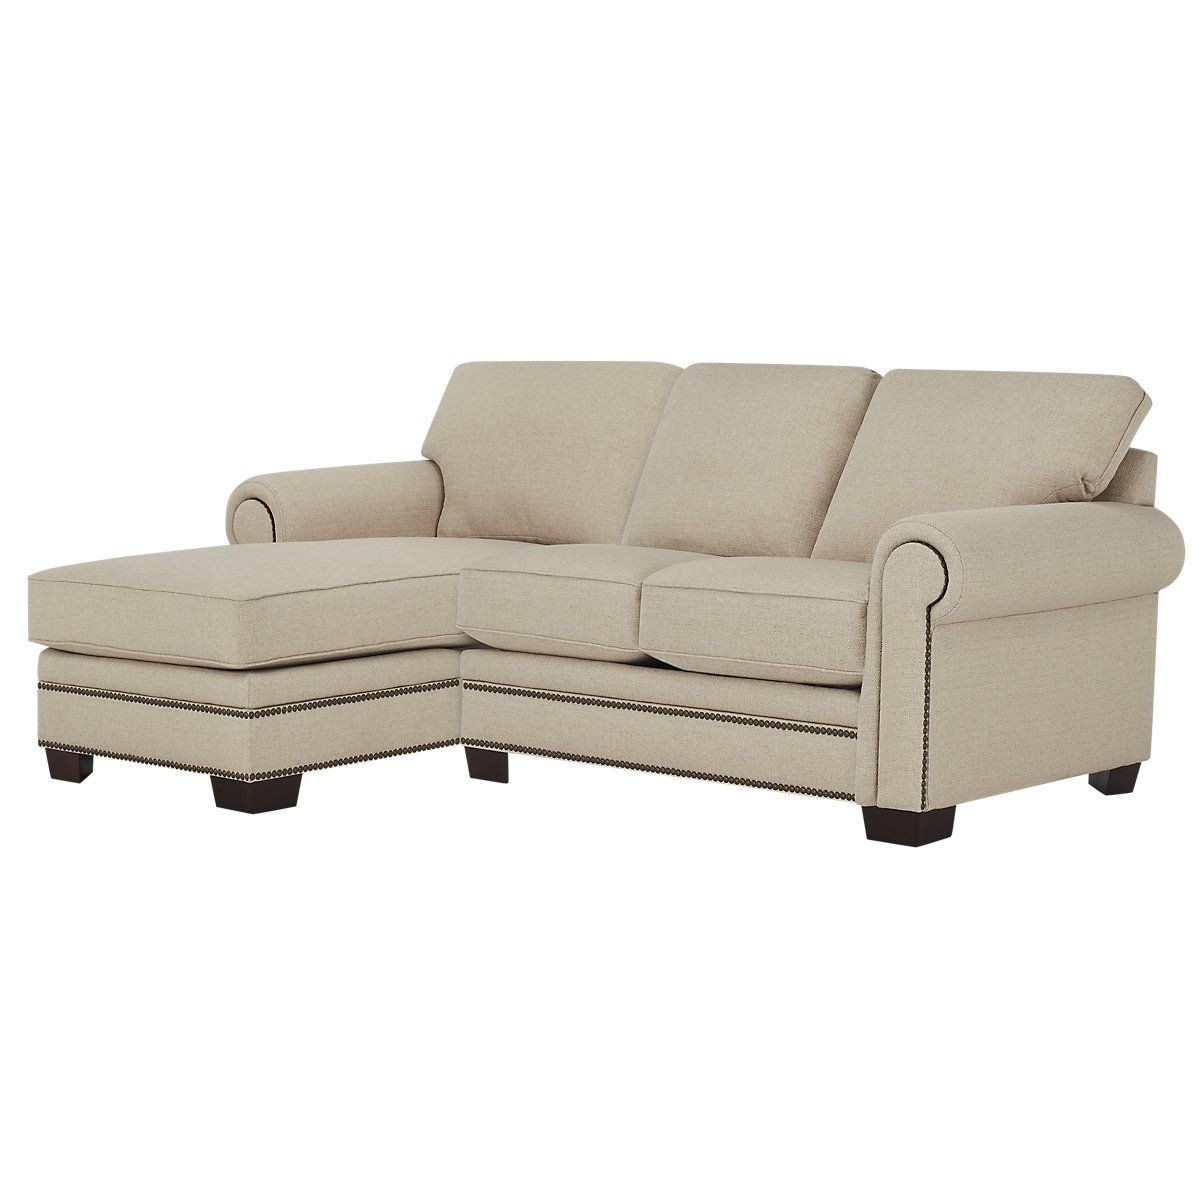 City furniture foster khaki fabric left chaise sectional for Chaise kaki